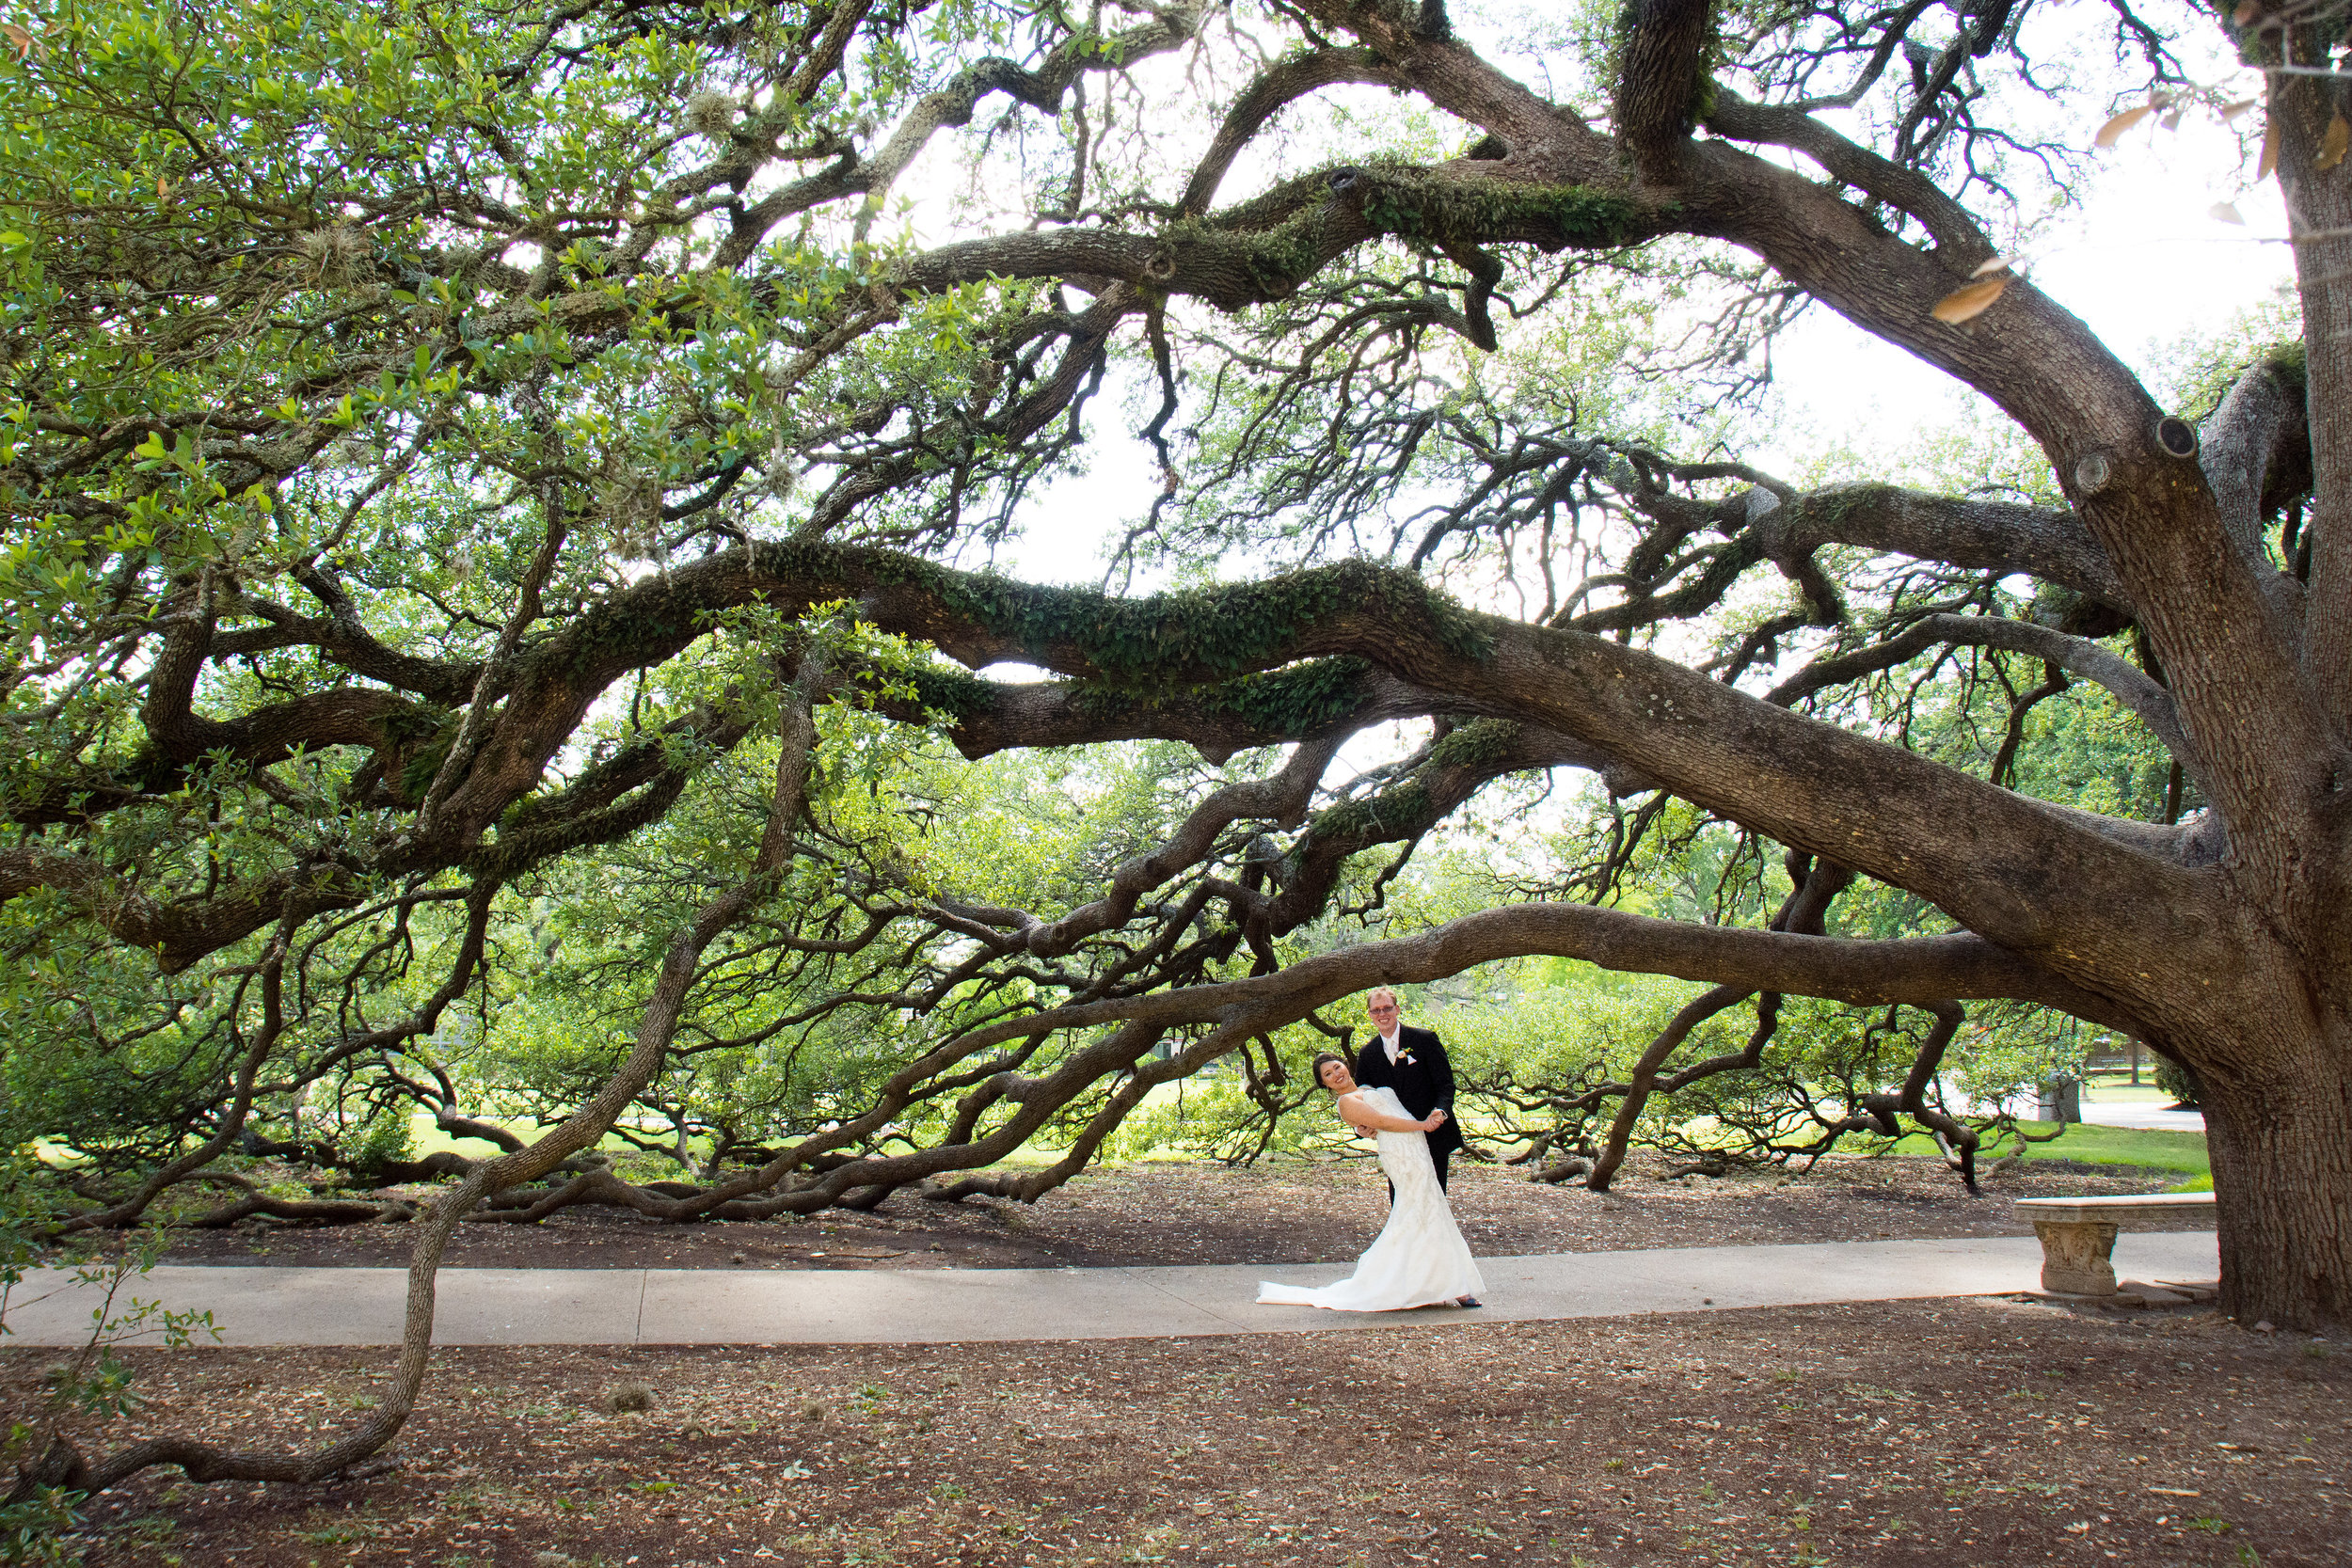 The Century Tree on Texas A&M University's campus is very special to the students and alumni. Tradition says that if a couple walks under the special tree, their love will last a lifetime. We have no doubts about the Hicks.